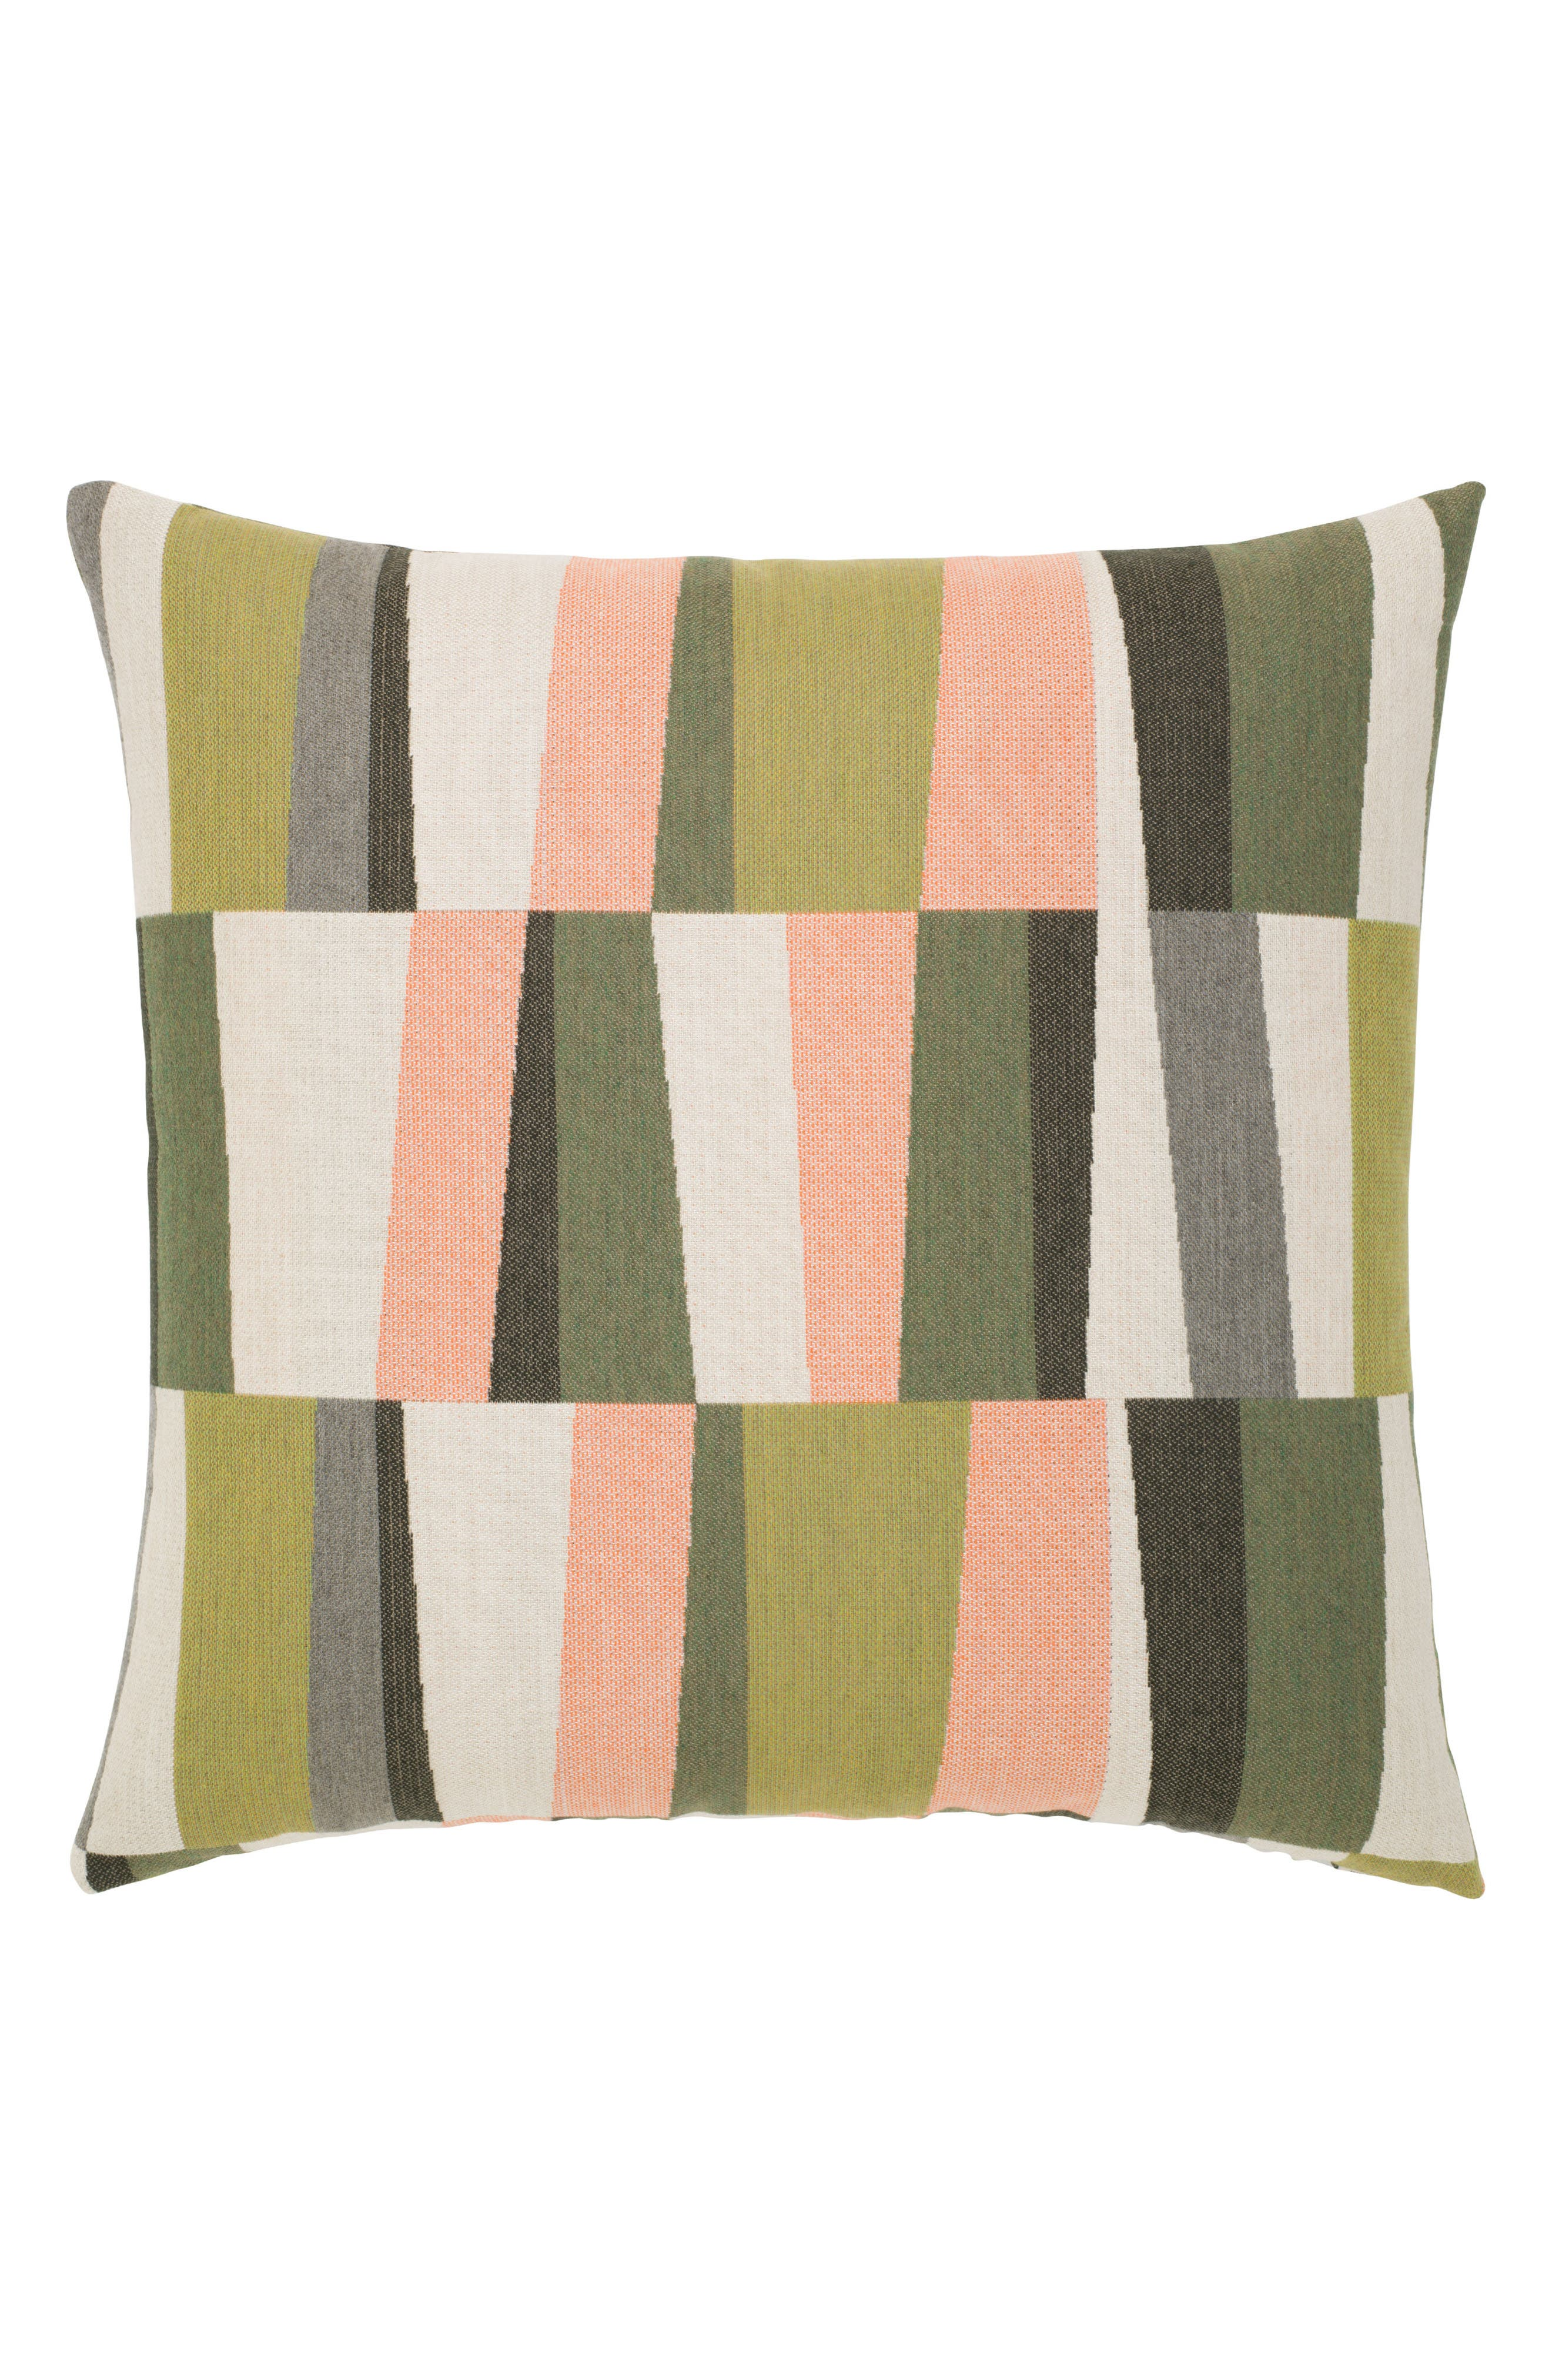 Elaine Smith Strata Fern Indoor/Outdoor Accent Pillow